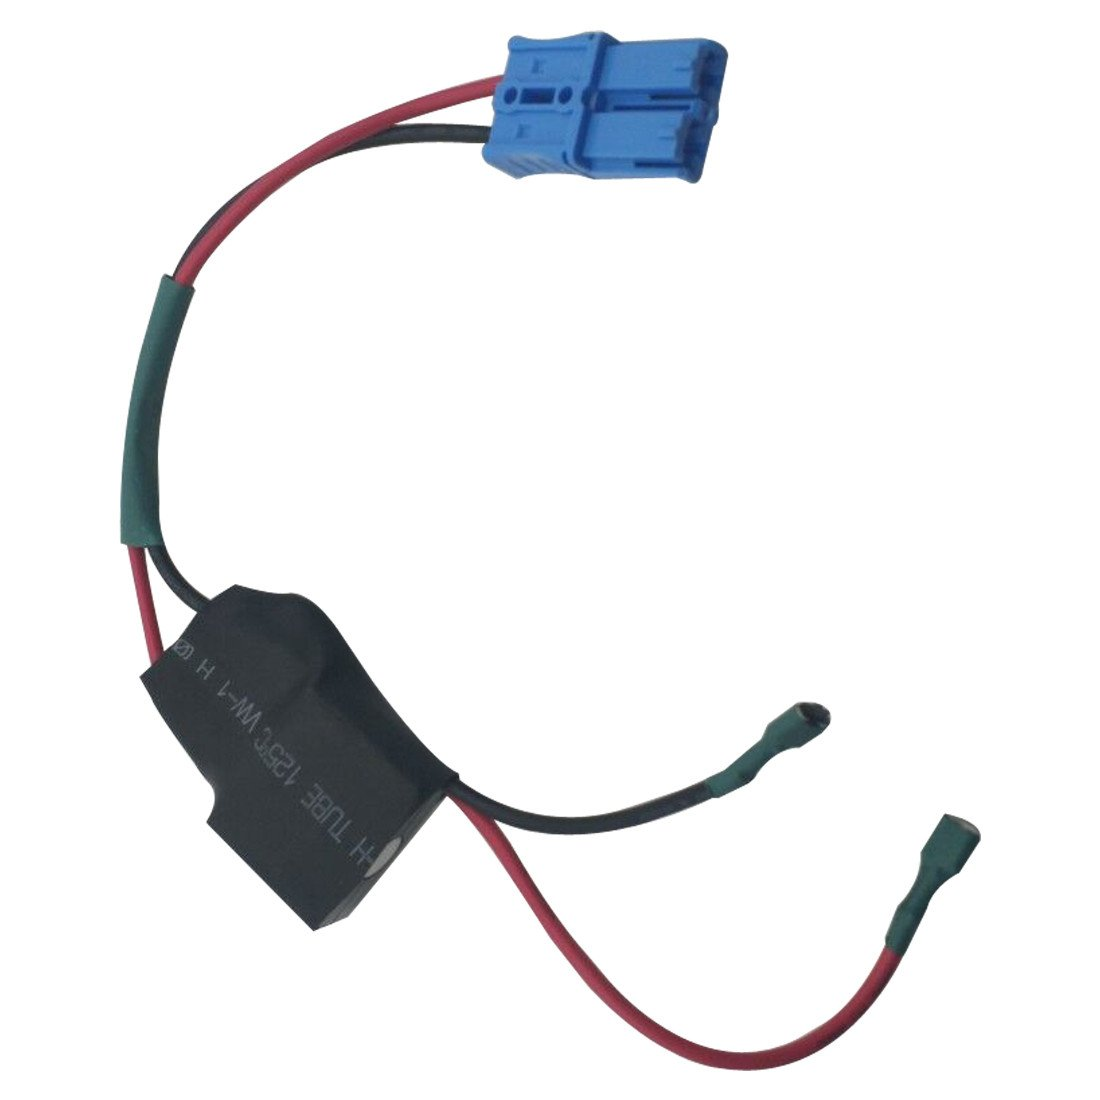 weelye Children's Electric Car Battery Connectoy Wiring Harnness, for Kids Trax Fuse Replacement Parts